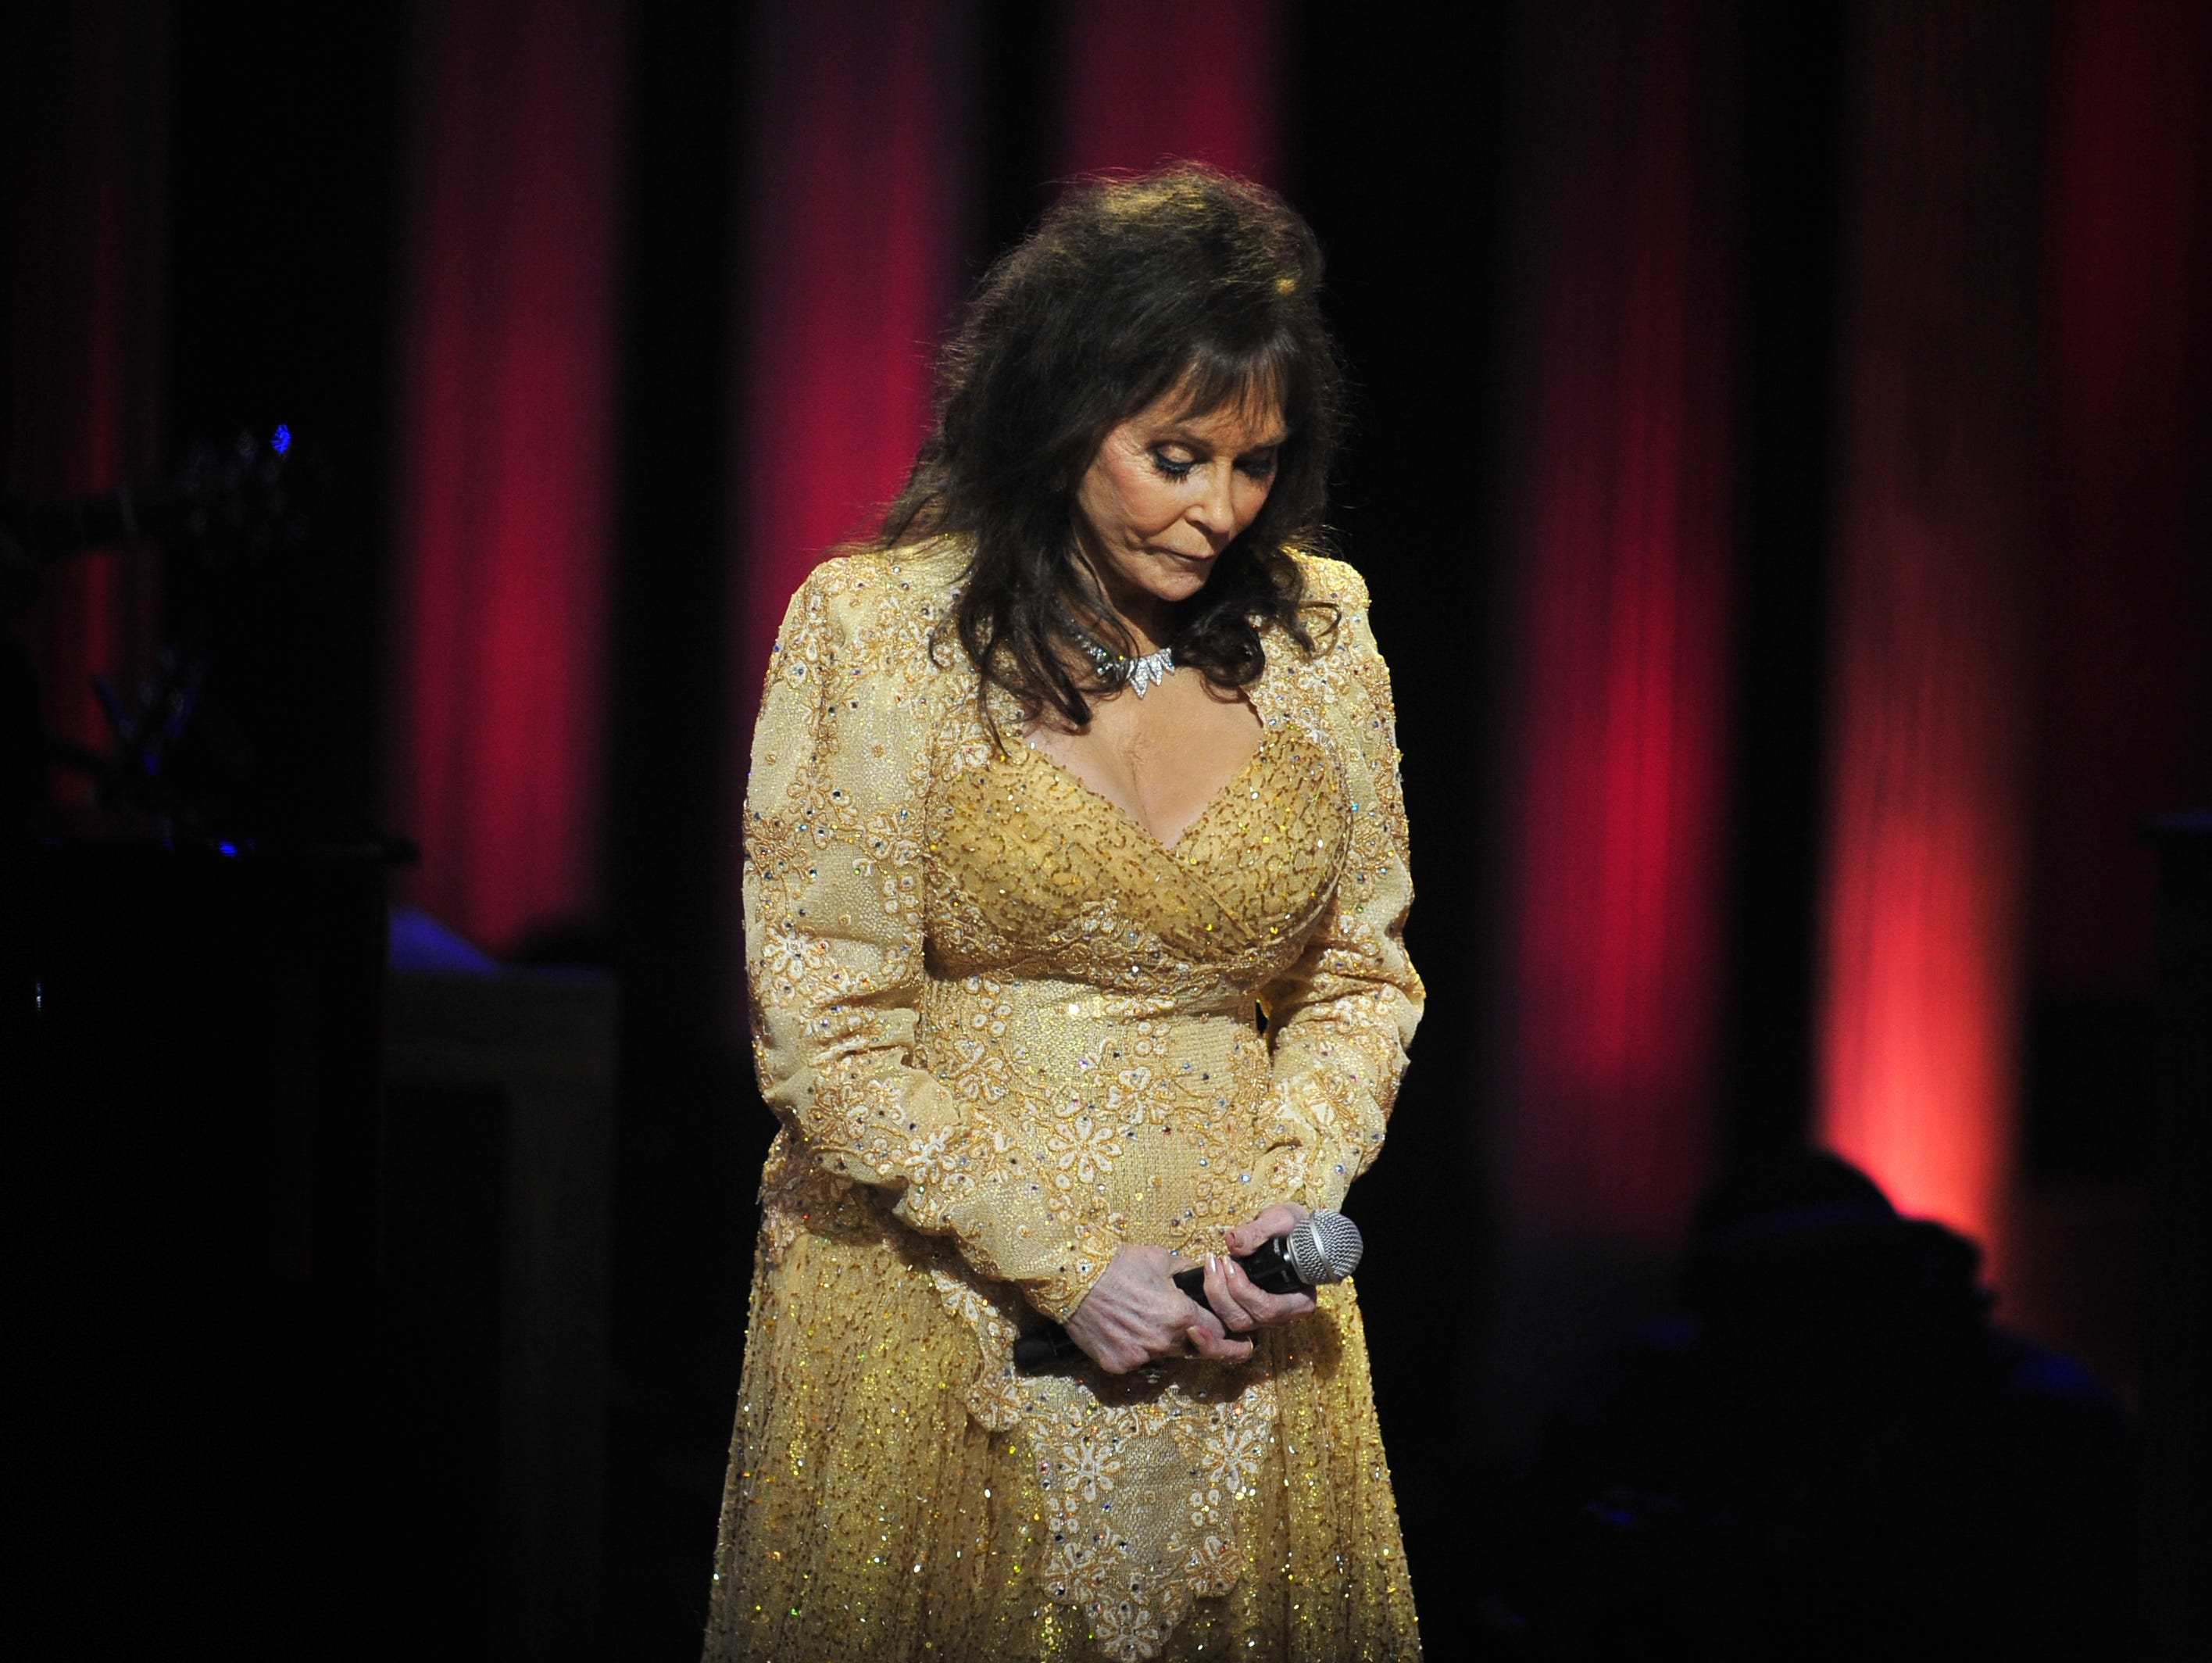 Loretta Lynn takes a bow after performing onstage for the audience at the Grande Ole Opry in Nashville on Sept. 25, 2012. Lynn celebrated her 50th year as an Opry member in 2012.